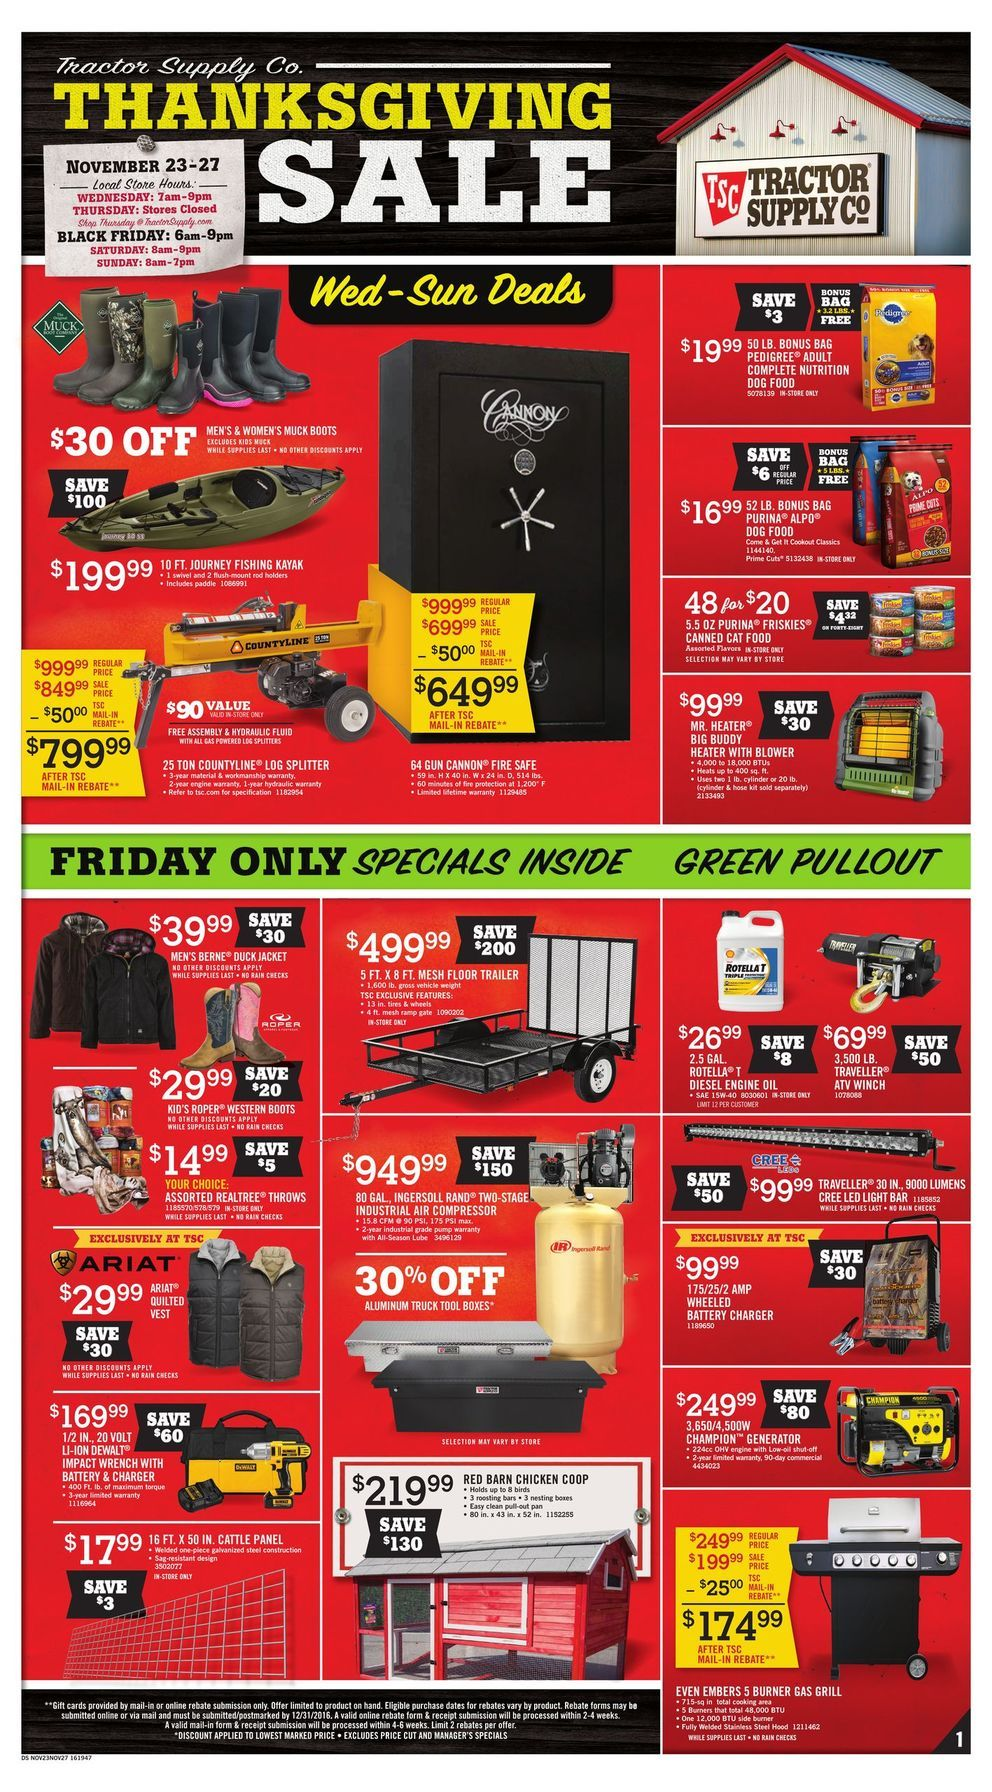 Pin By Amber Bare On Weekly Ads And Flyer Samples Tractor Supply